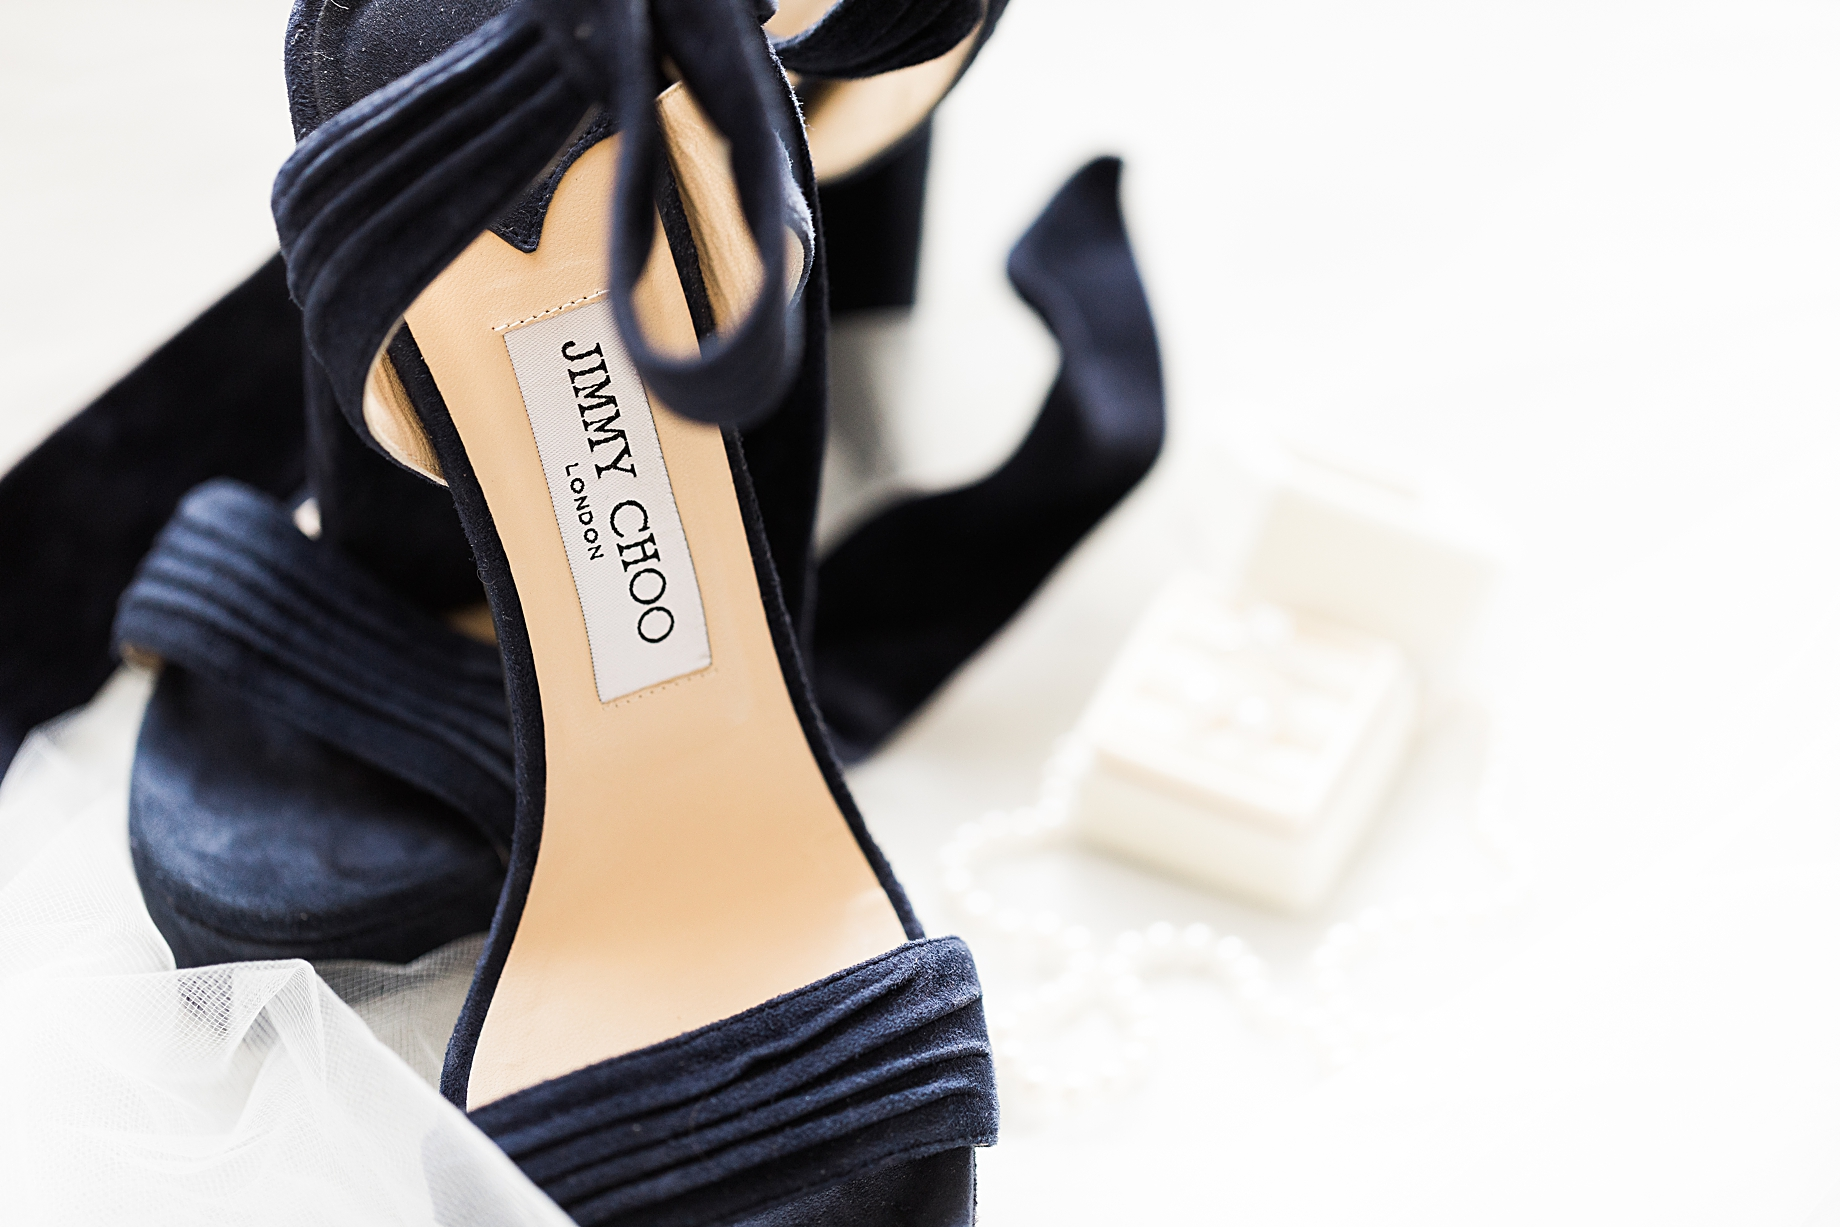 Jimmy Choo Bridal Shoes | Philadelphia Winter Wedding